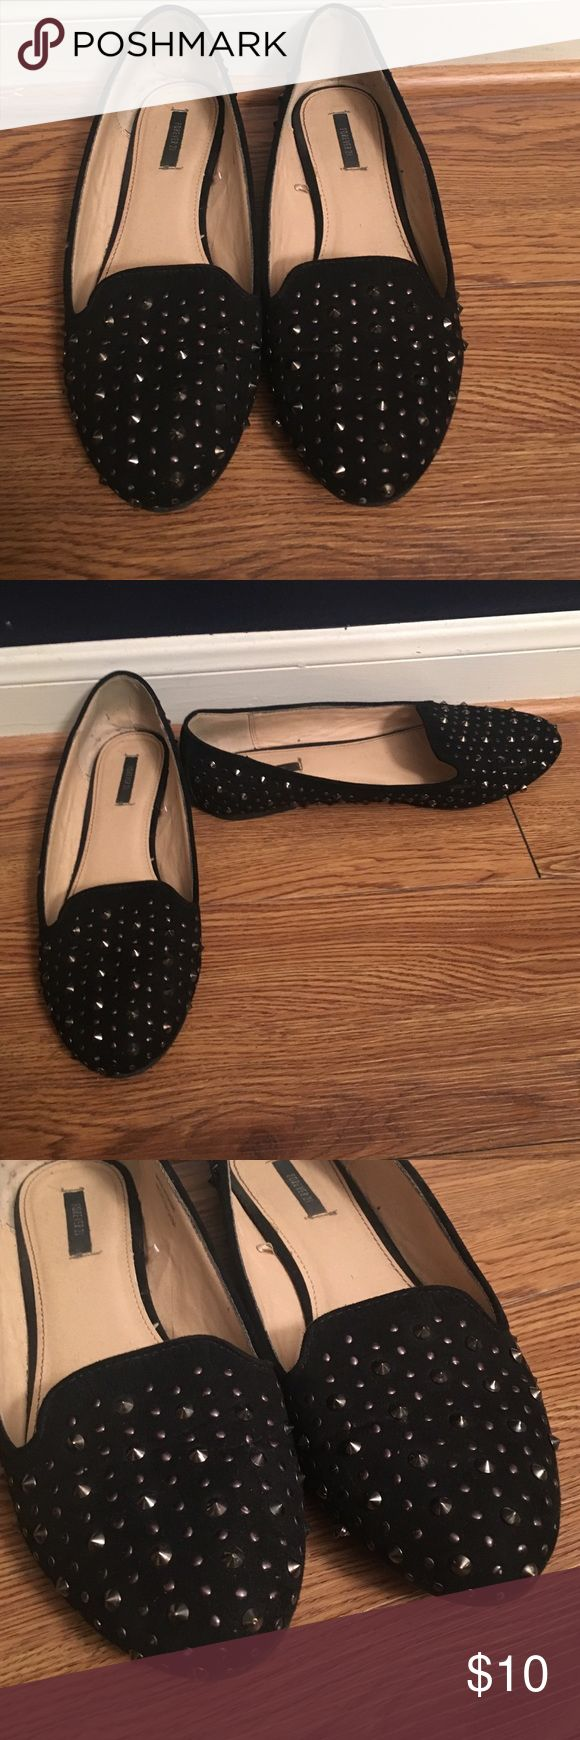 Studded loafers Super comfortable loafers with gold and silver studs Forever 21 Shoes Flats & Loafers